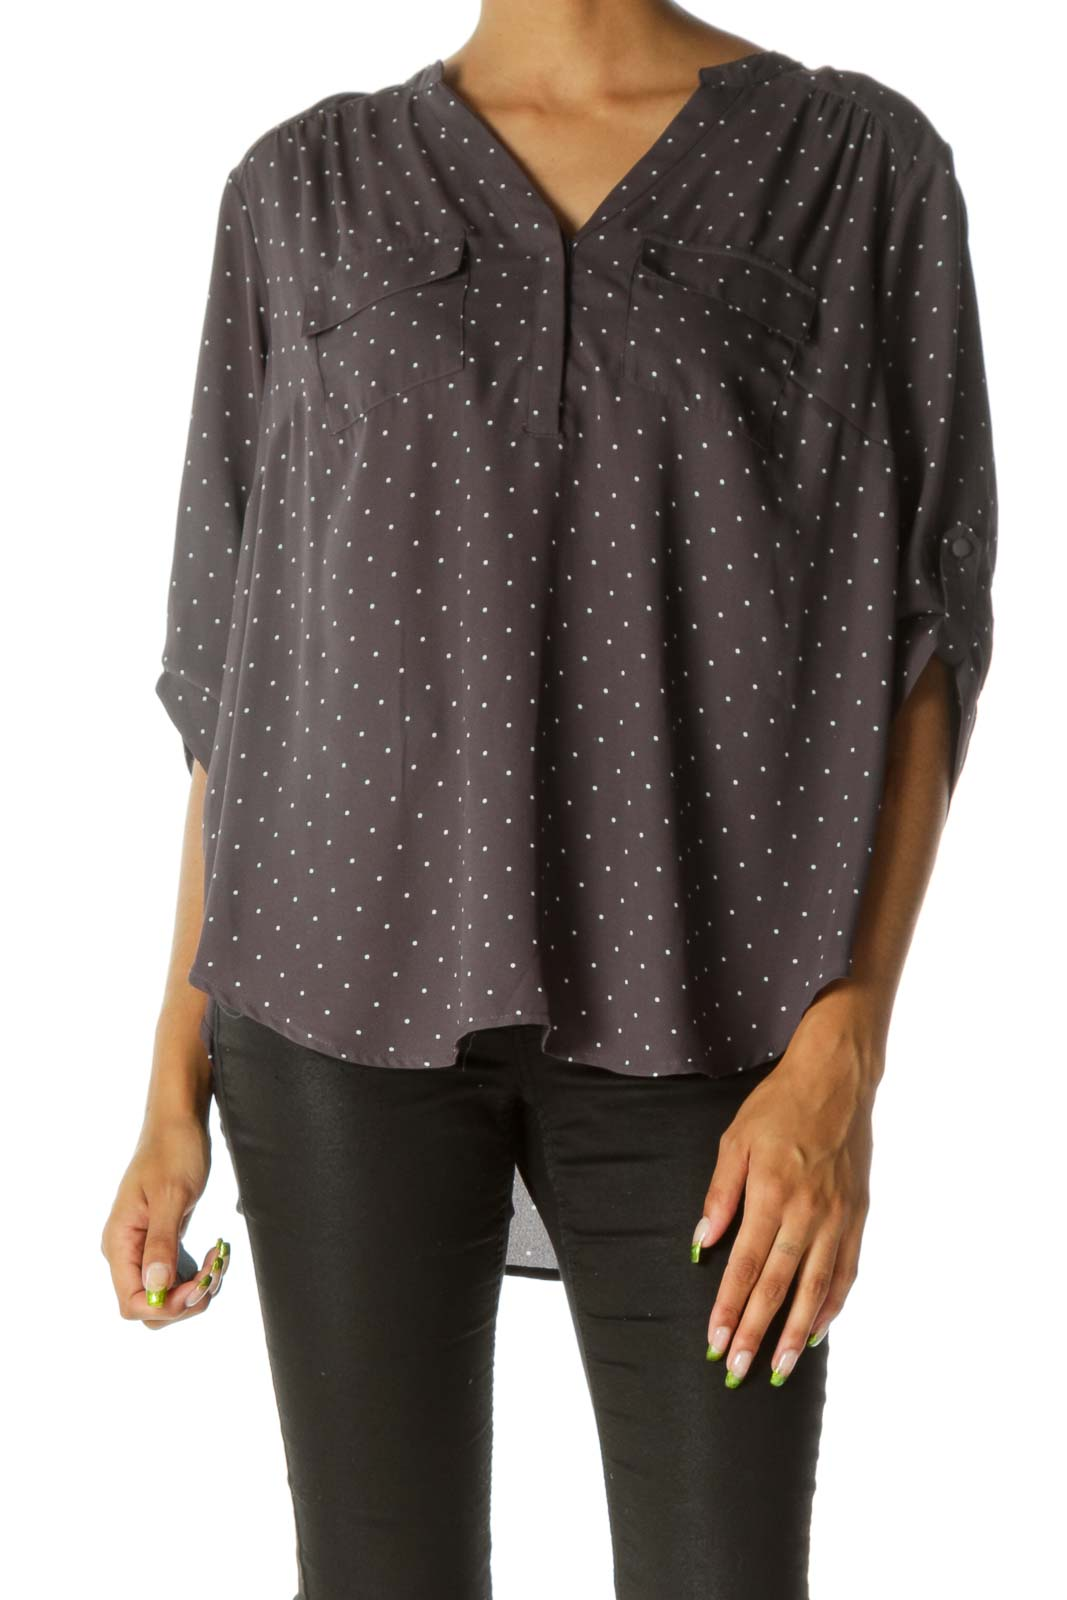 Gray White Dotted Breast Pockets V-Neck Light Shirt Front